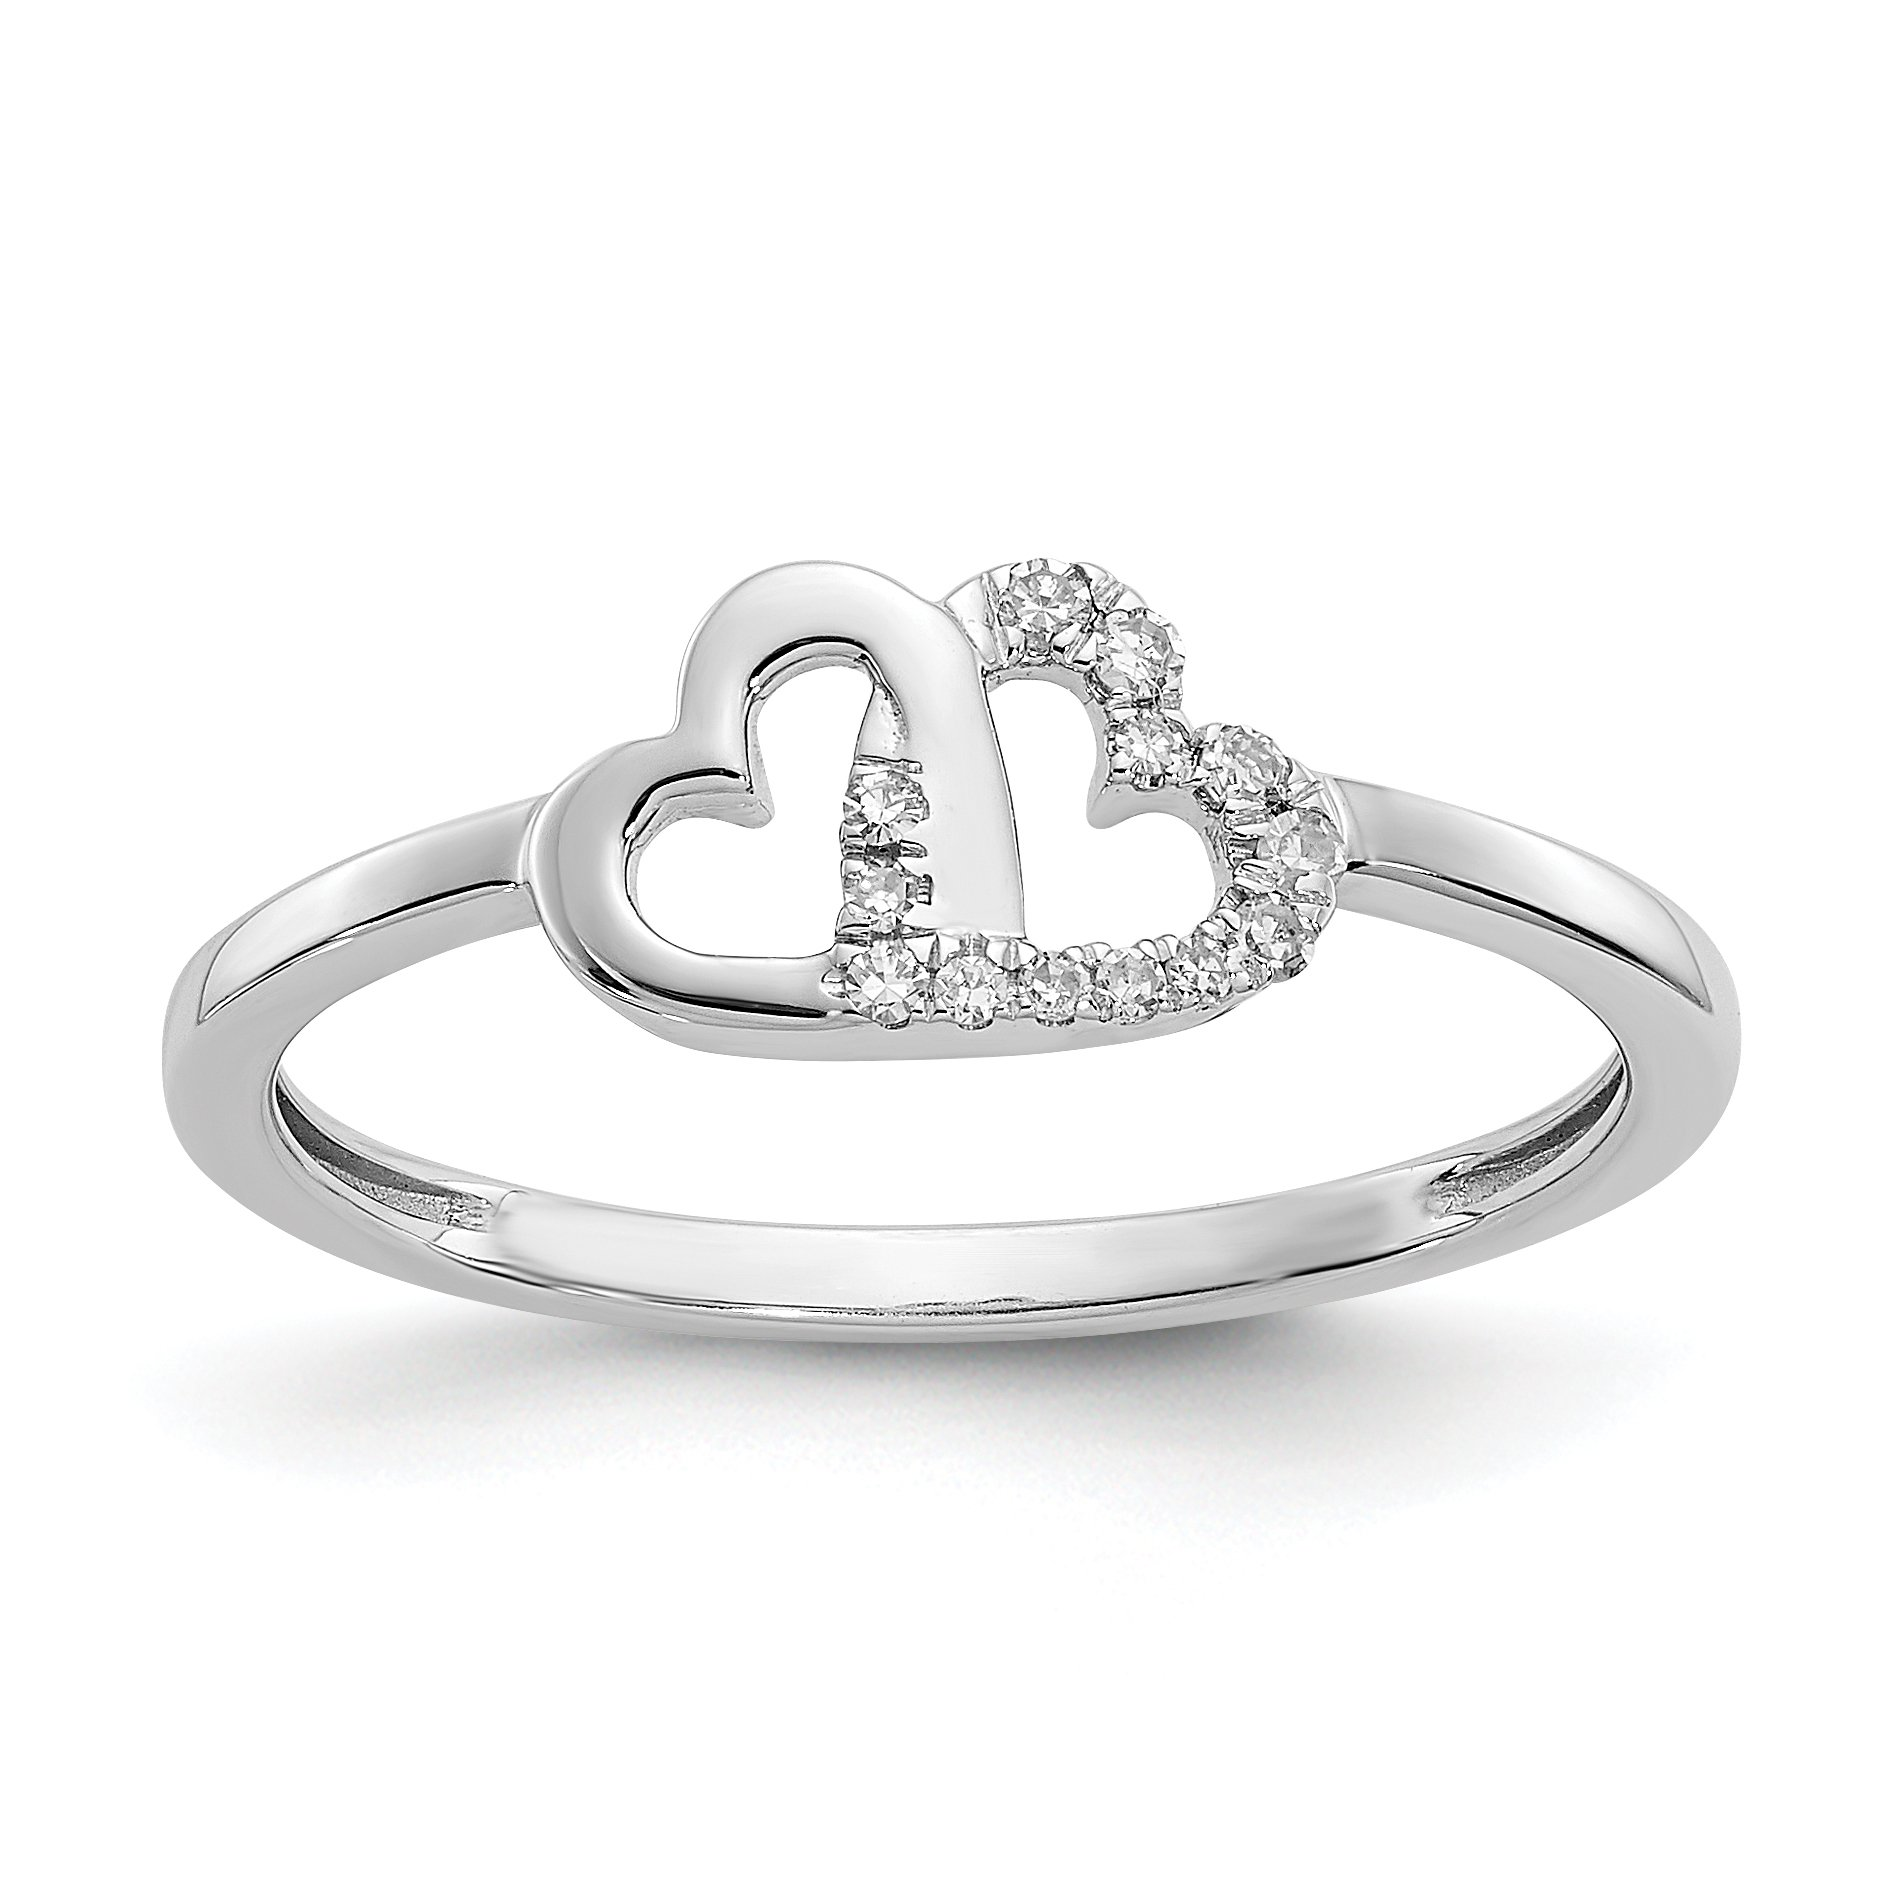 ICE CARATS 14k White Gold Diamond Double Heart Band Ring Size 7.00 S/love Fine Jewelry Gift Set For Women Heart